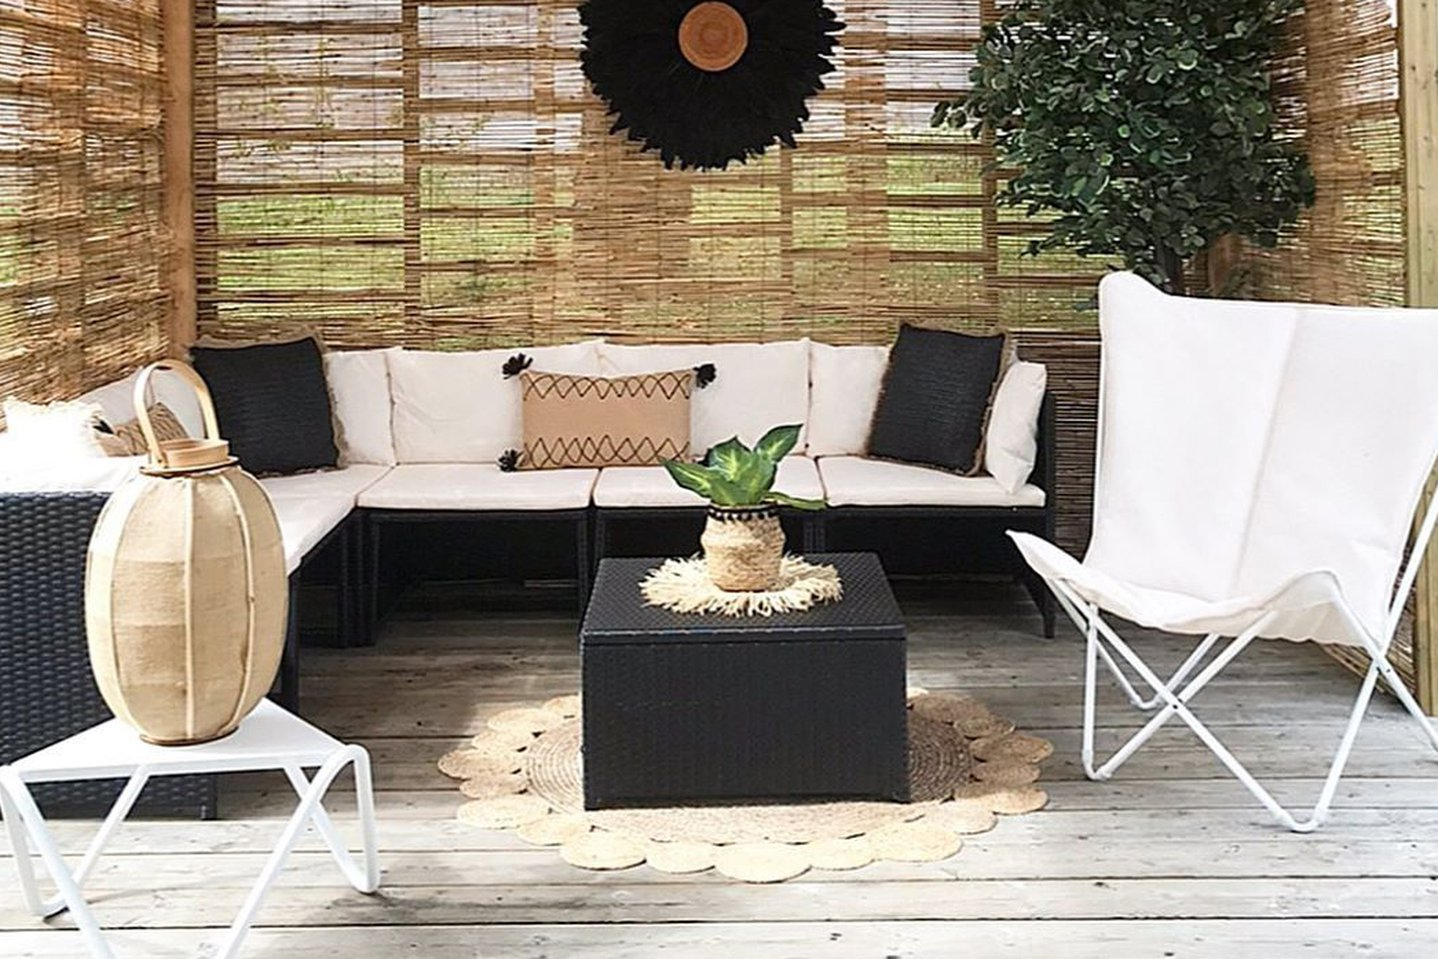 How to set up a covered patio ?